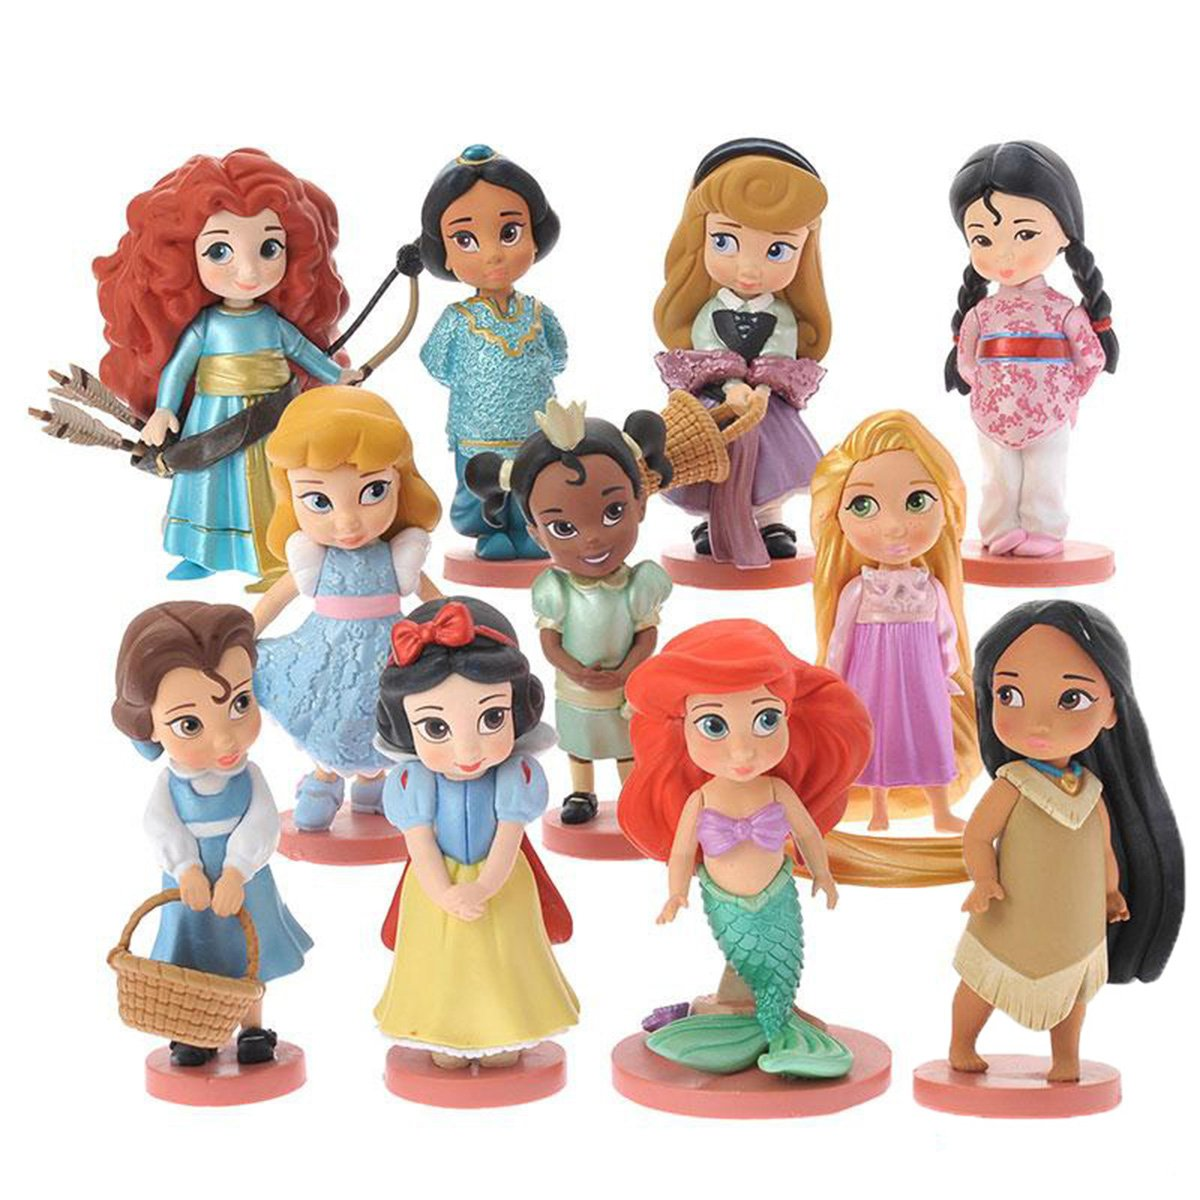 Lovely World Princess Toys 1 Set Of 11 Dolls Action Figures Girl Dashboard Bobble Doll, Collection Figurines Gifts For Decoration 8cm/3.1''